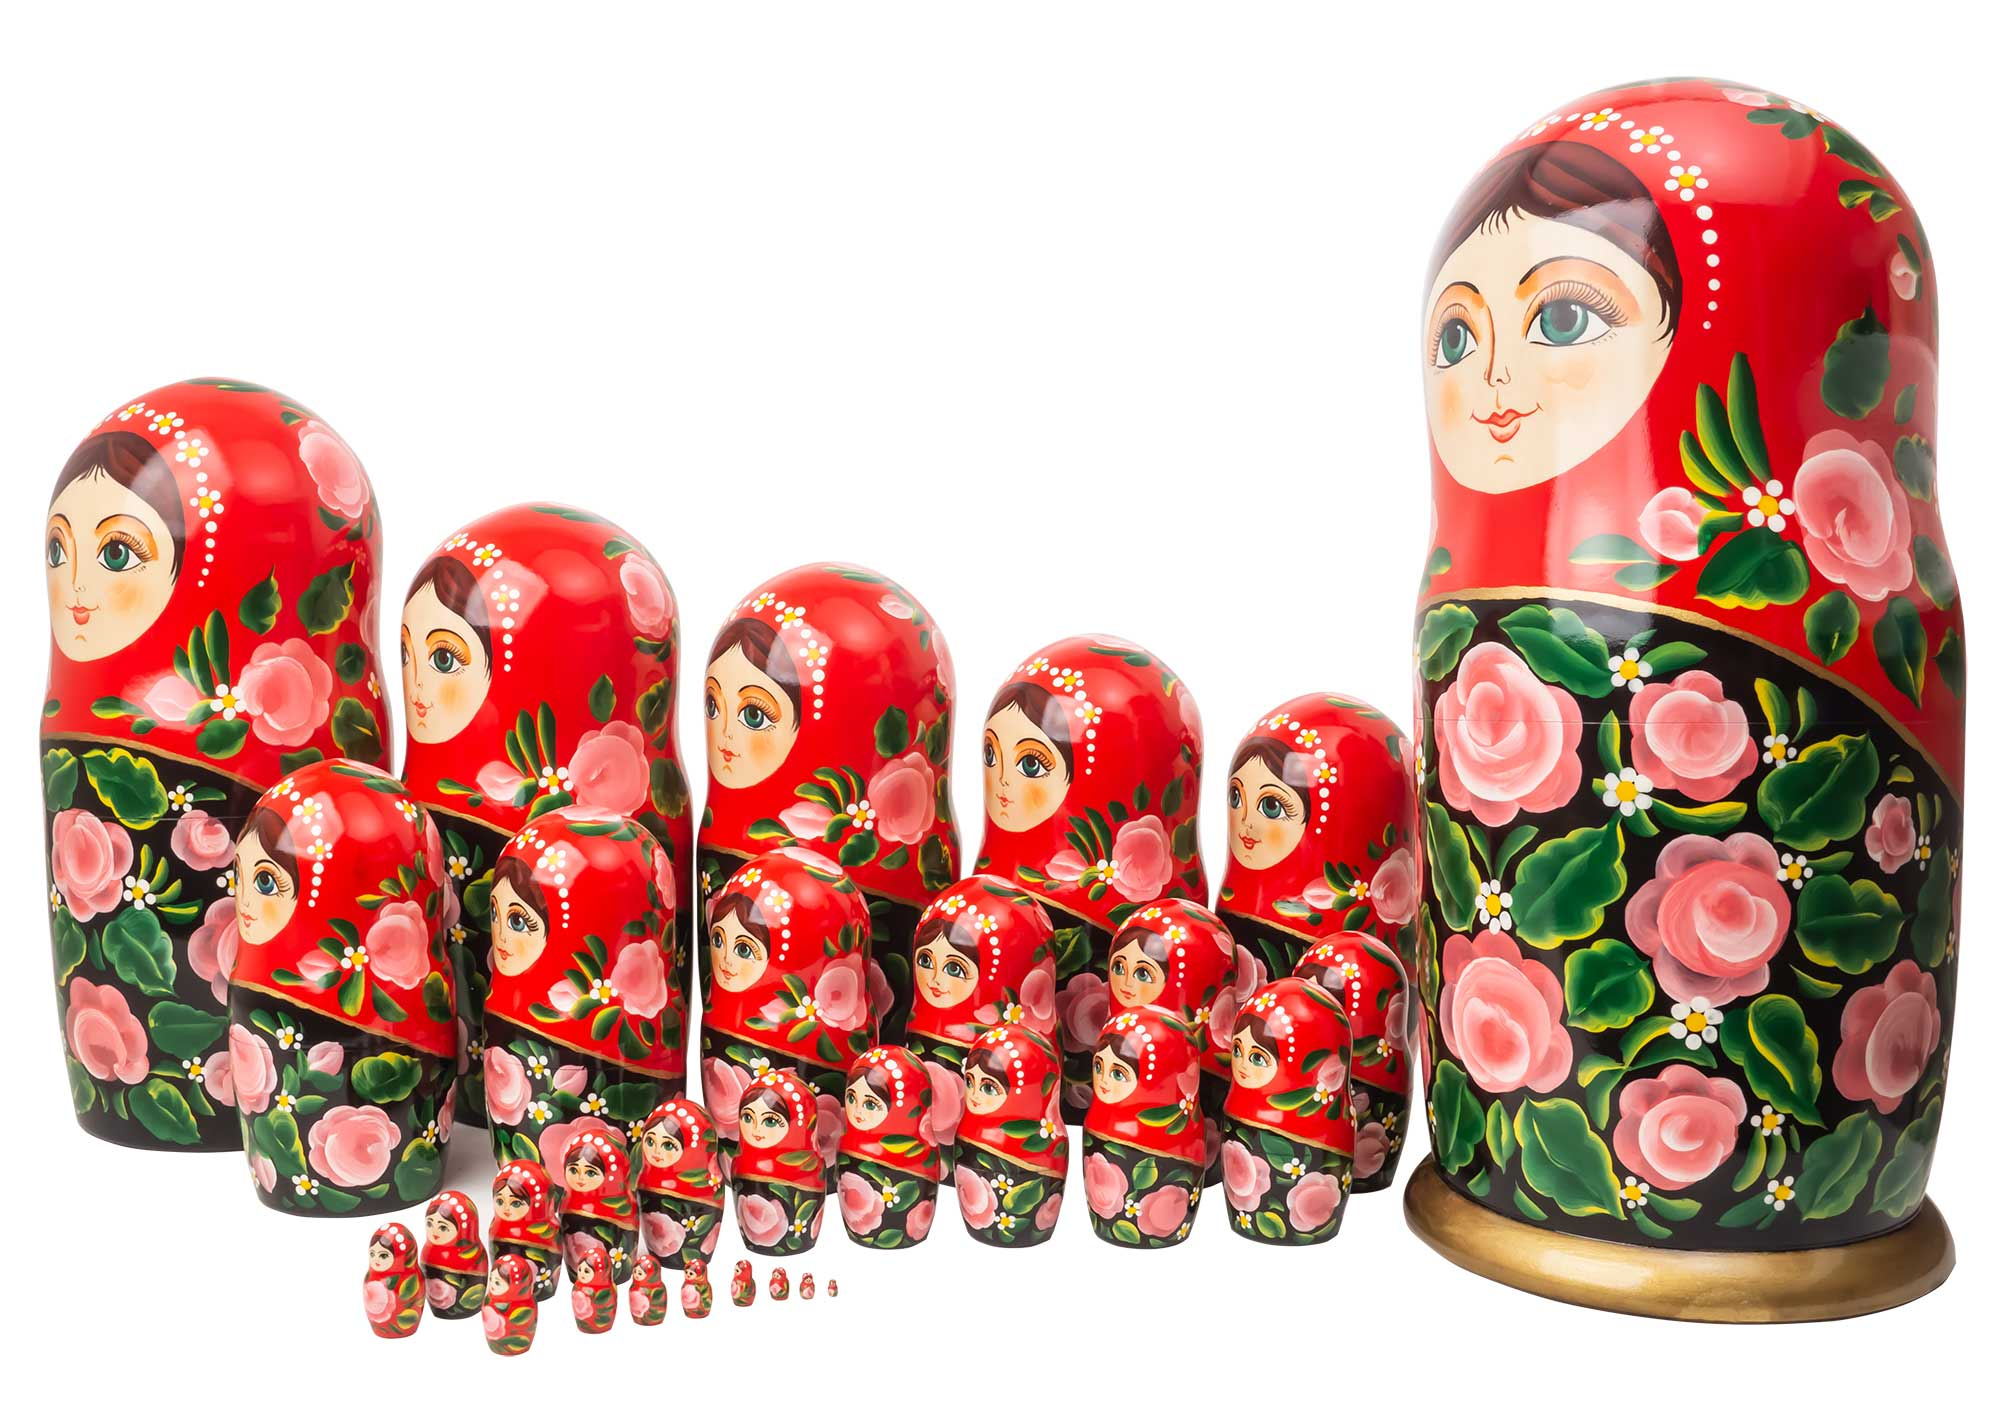 "Buy Art Nesting Doll 30pc./17.5"" at GoldenCockerel.com"